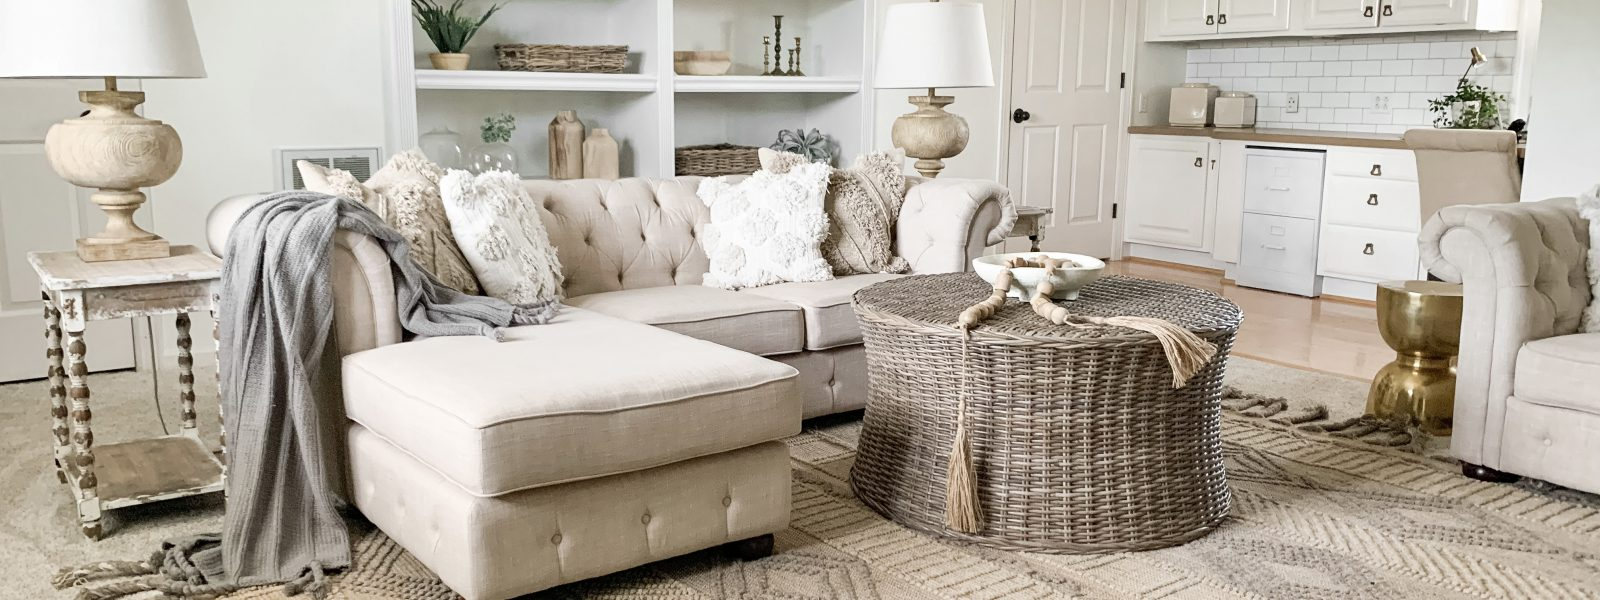 9 Jute Rugs That Look Great In Any Space